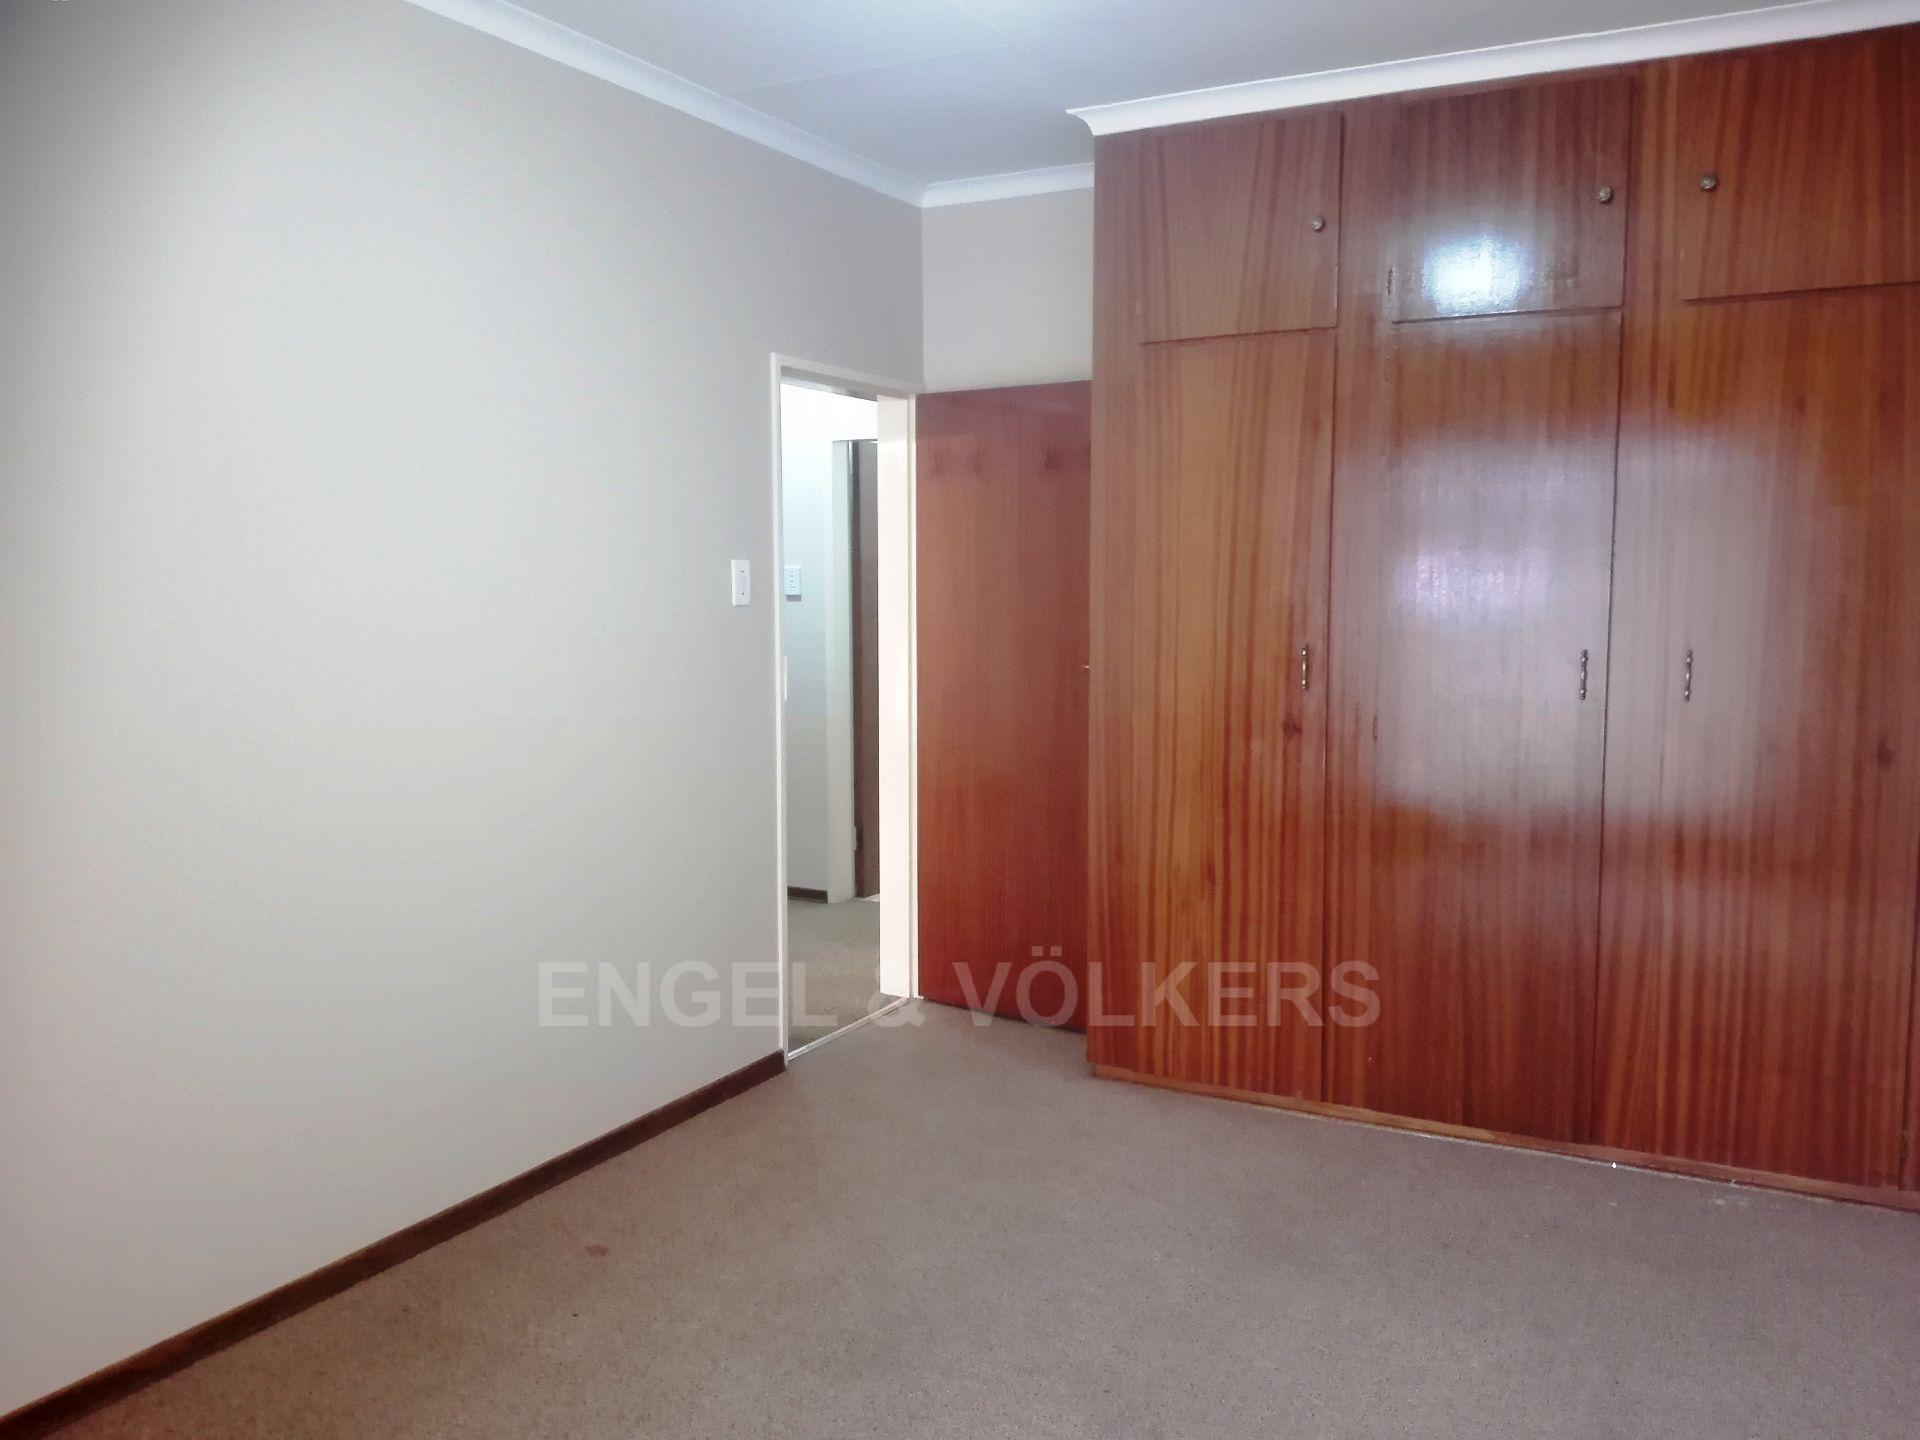 Potchefstroom Central for sale property. Ref No: 13498695. Picture no 18